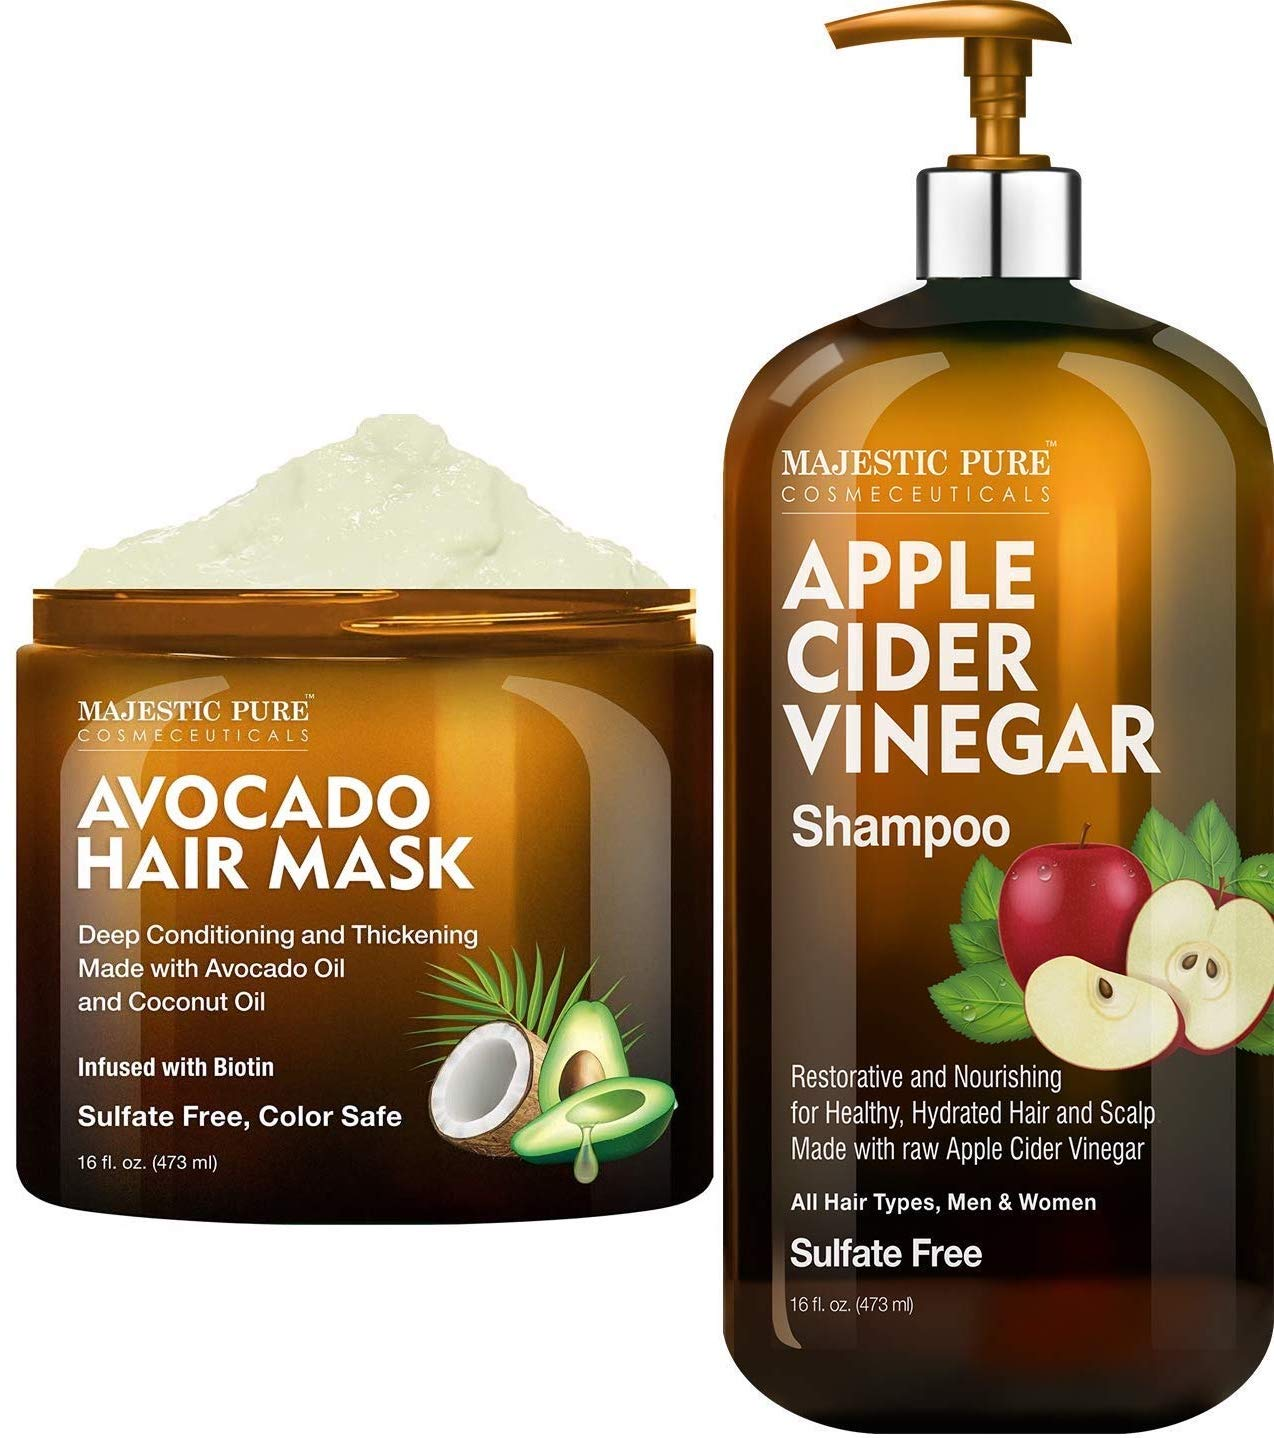 Apple Cider Vinegar Shampoo and Avocado Hair Mask by Majestic Pure, Hair Care Bundle, for ALL Hair Types